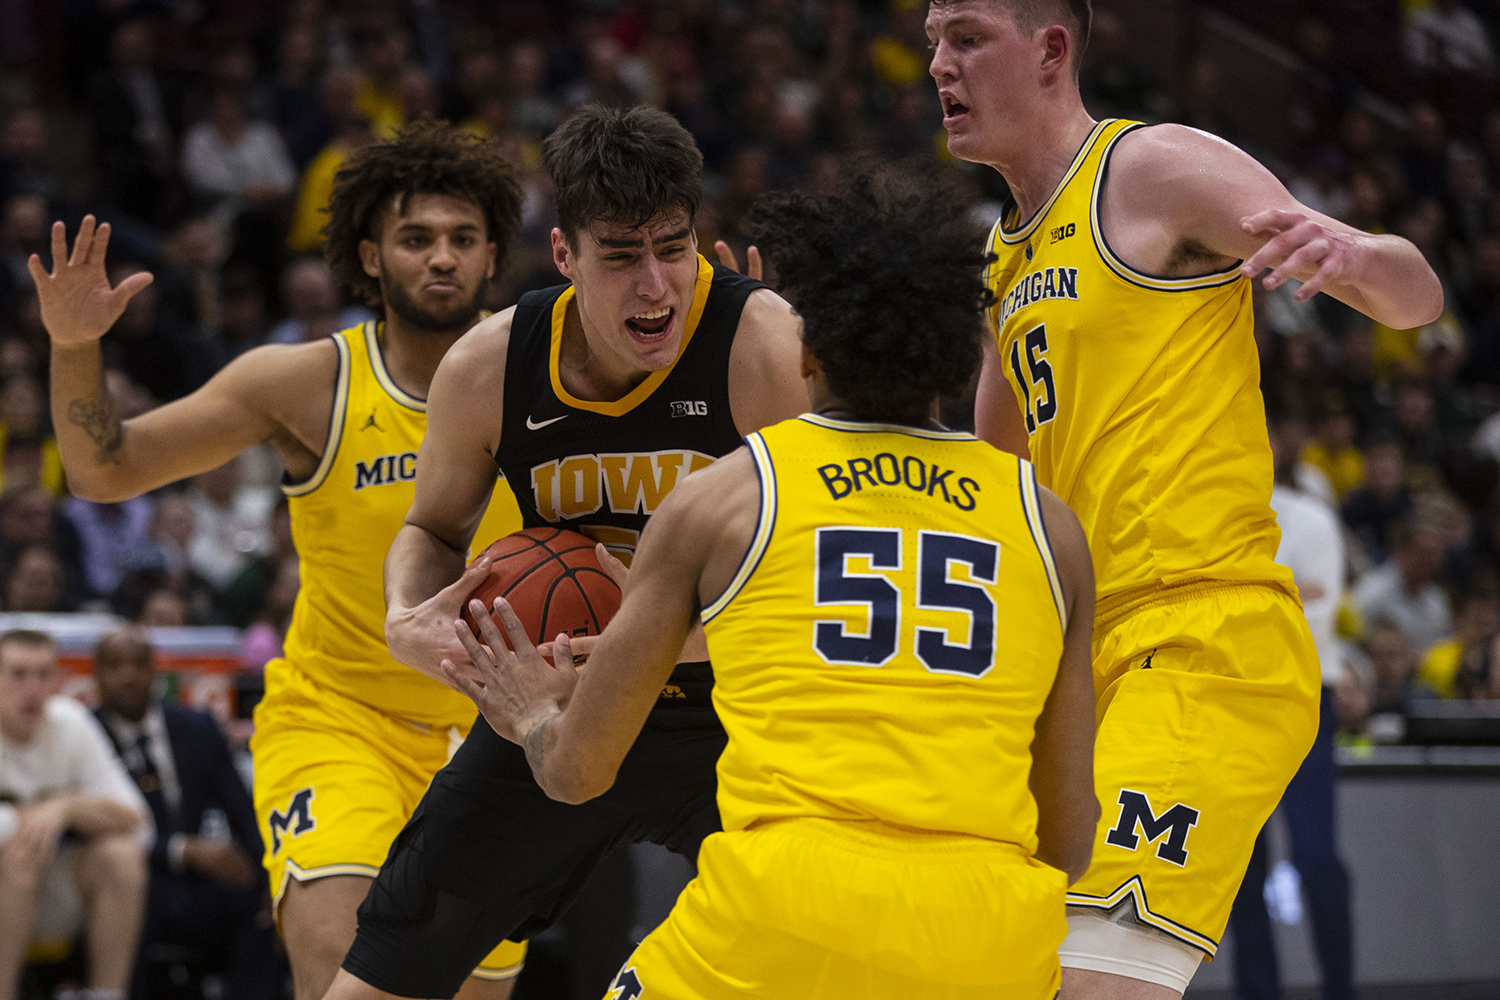 Iowa+forward+Luka+Garza+gets+tangled+in+Michigan+defense+during+the+Iowa%2FMichigan+Big+Ten+Tournament+men%27s+basketball+game+in+the+United+Center+in+Chicago+on+Friday%2C+March+15%2C+2019.+The+Wolverines+defeated+the+Hawkeyes%2C+74-53.+